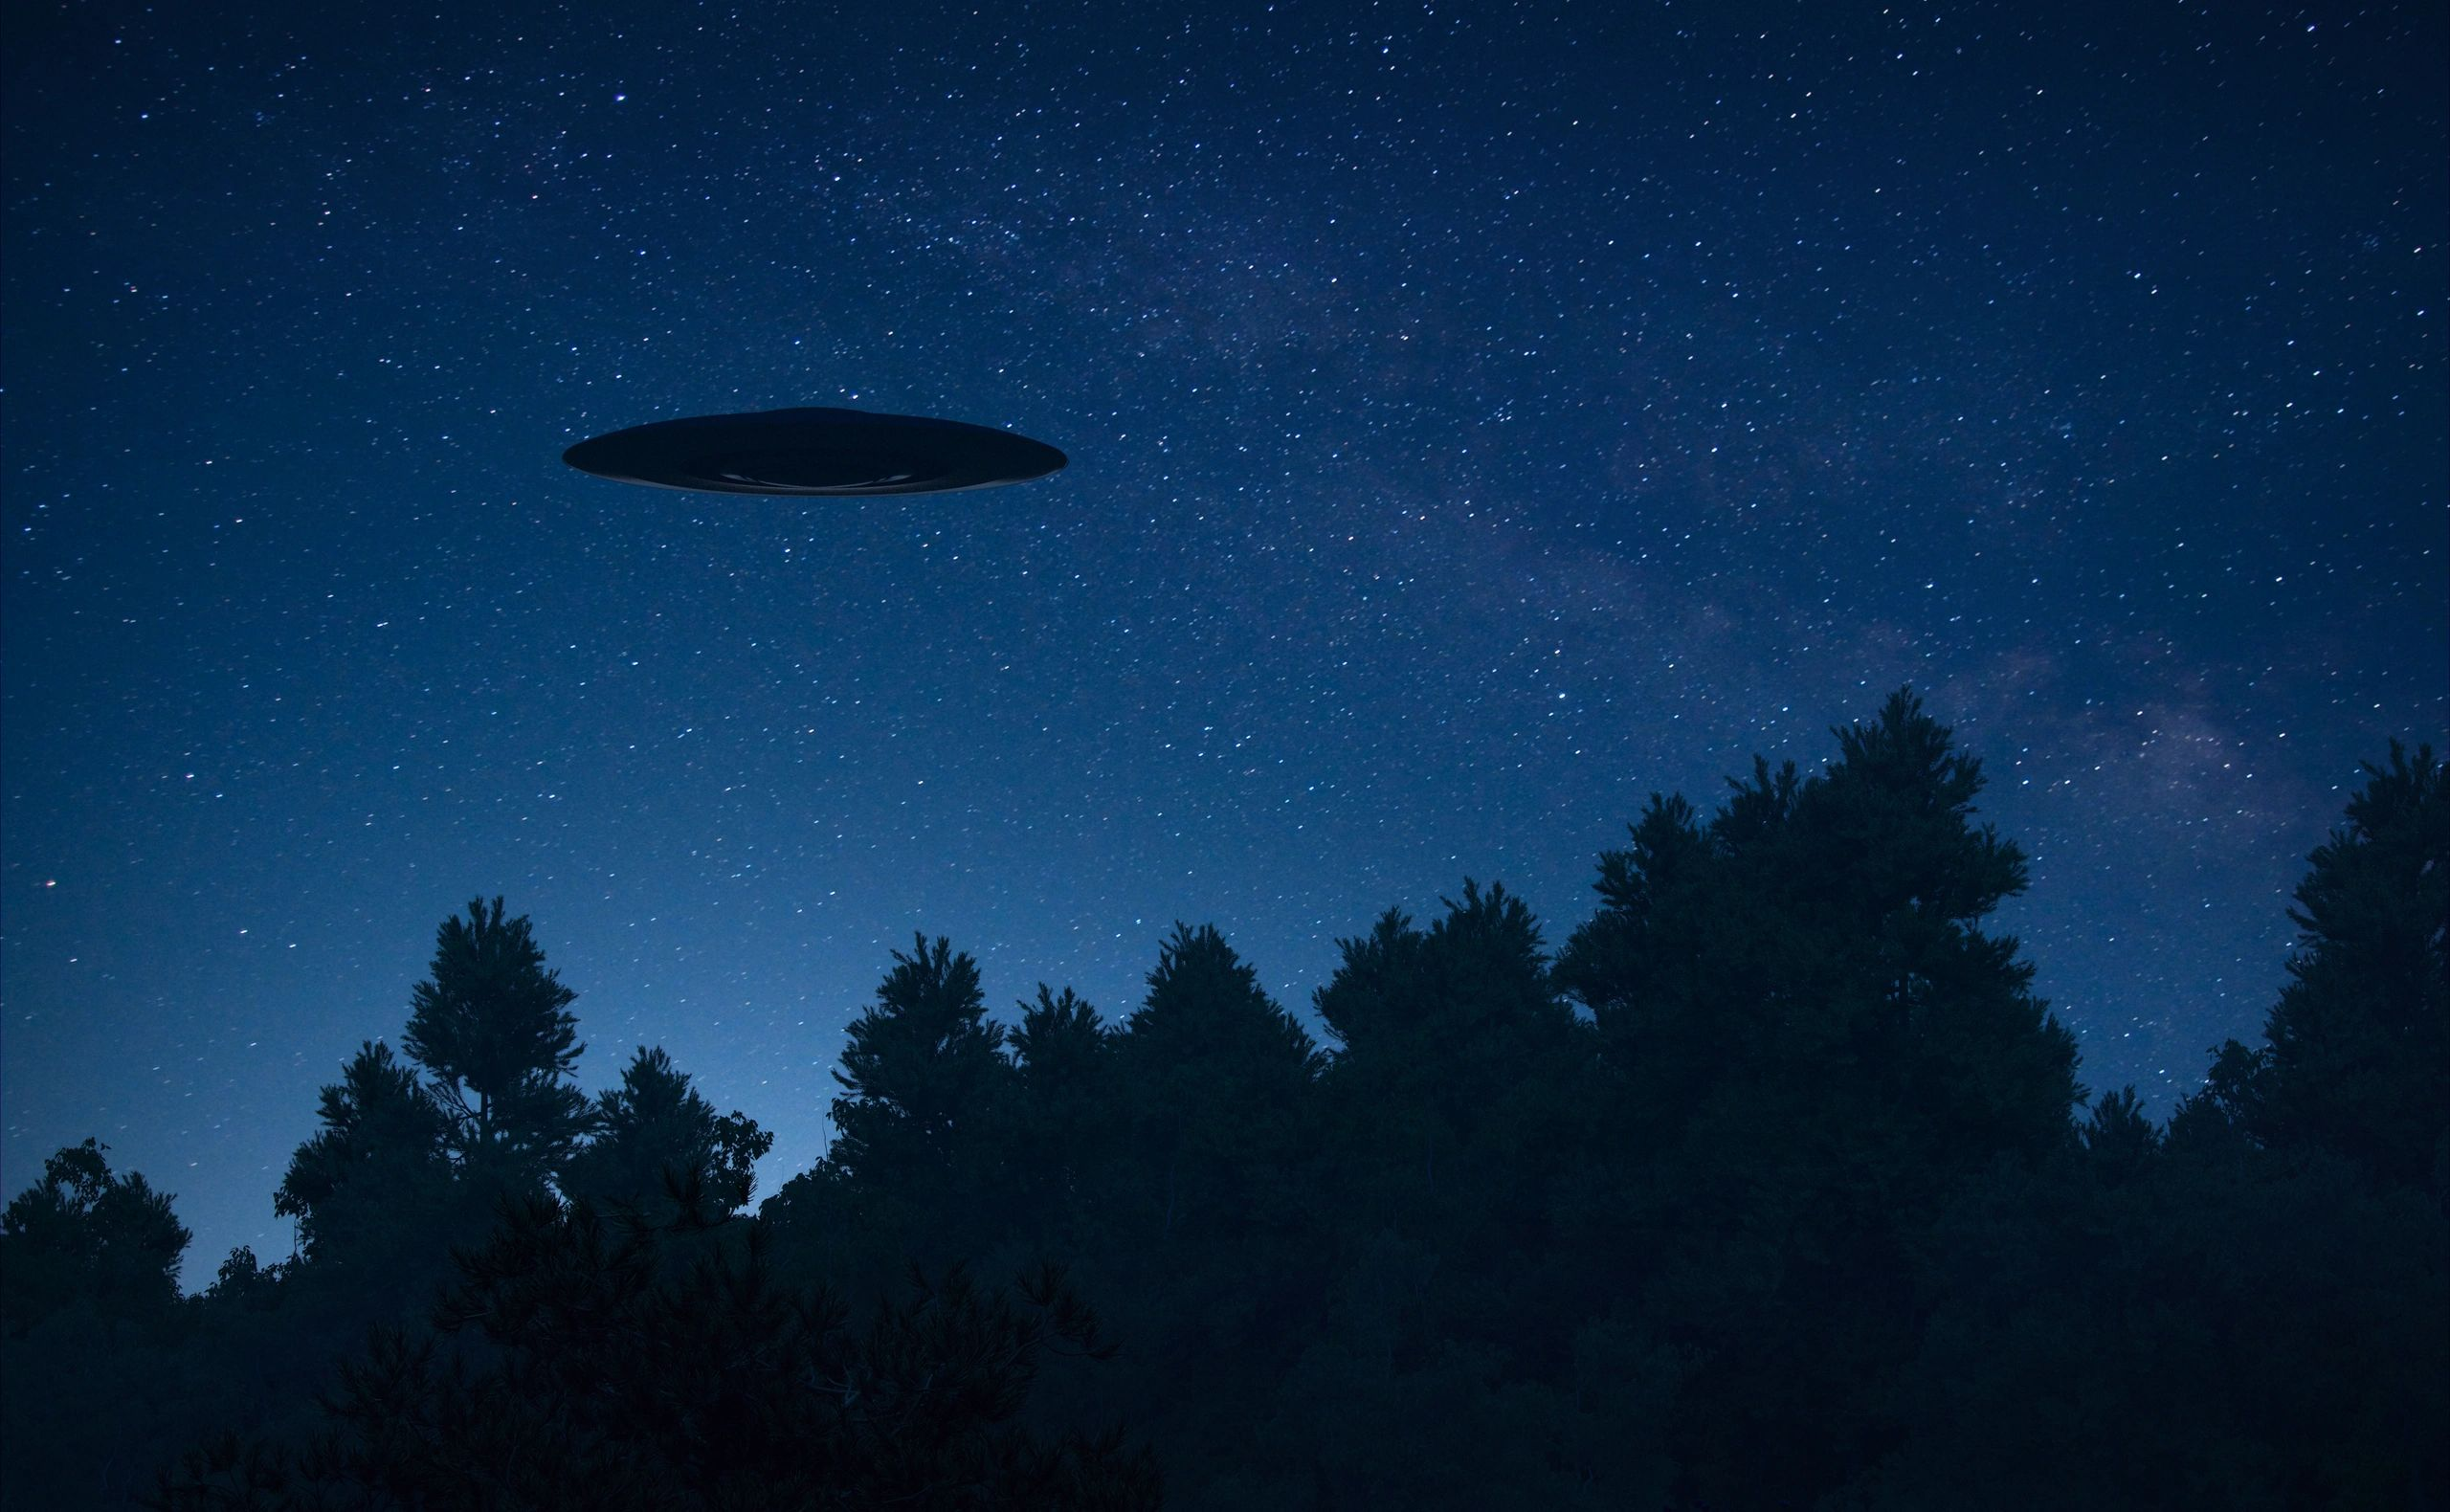 Saucer silouette hovers over trees against a backdrop of stars in the night sky.